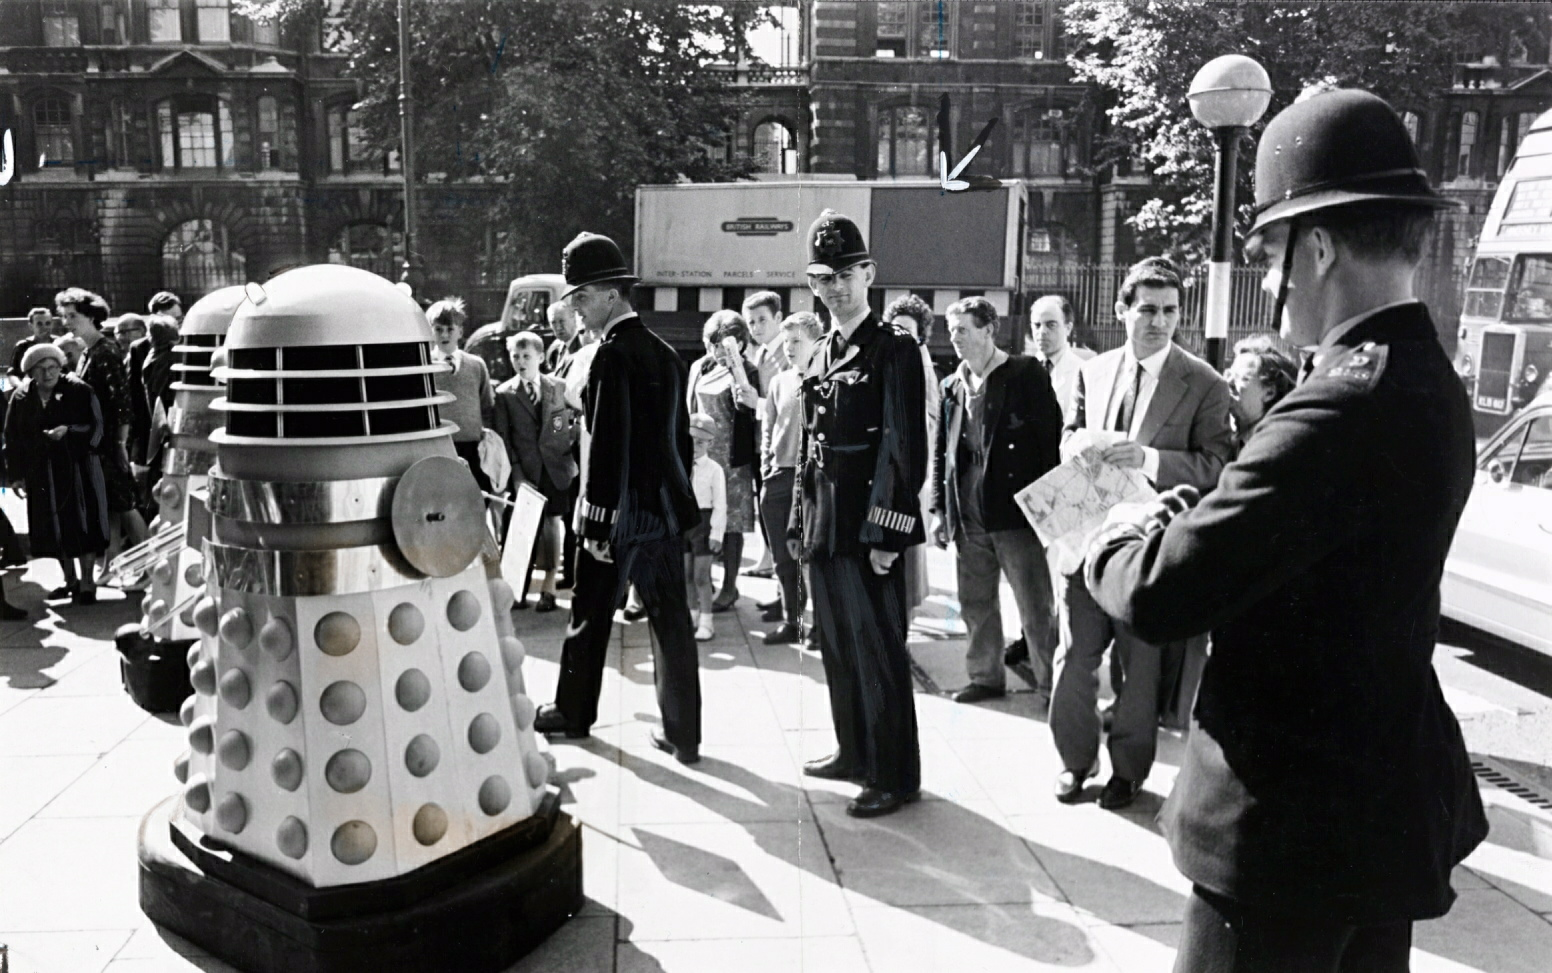 The Daleks invade London in 1964 in this archive picture courtesy of the National Media Museum/SSPL